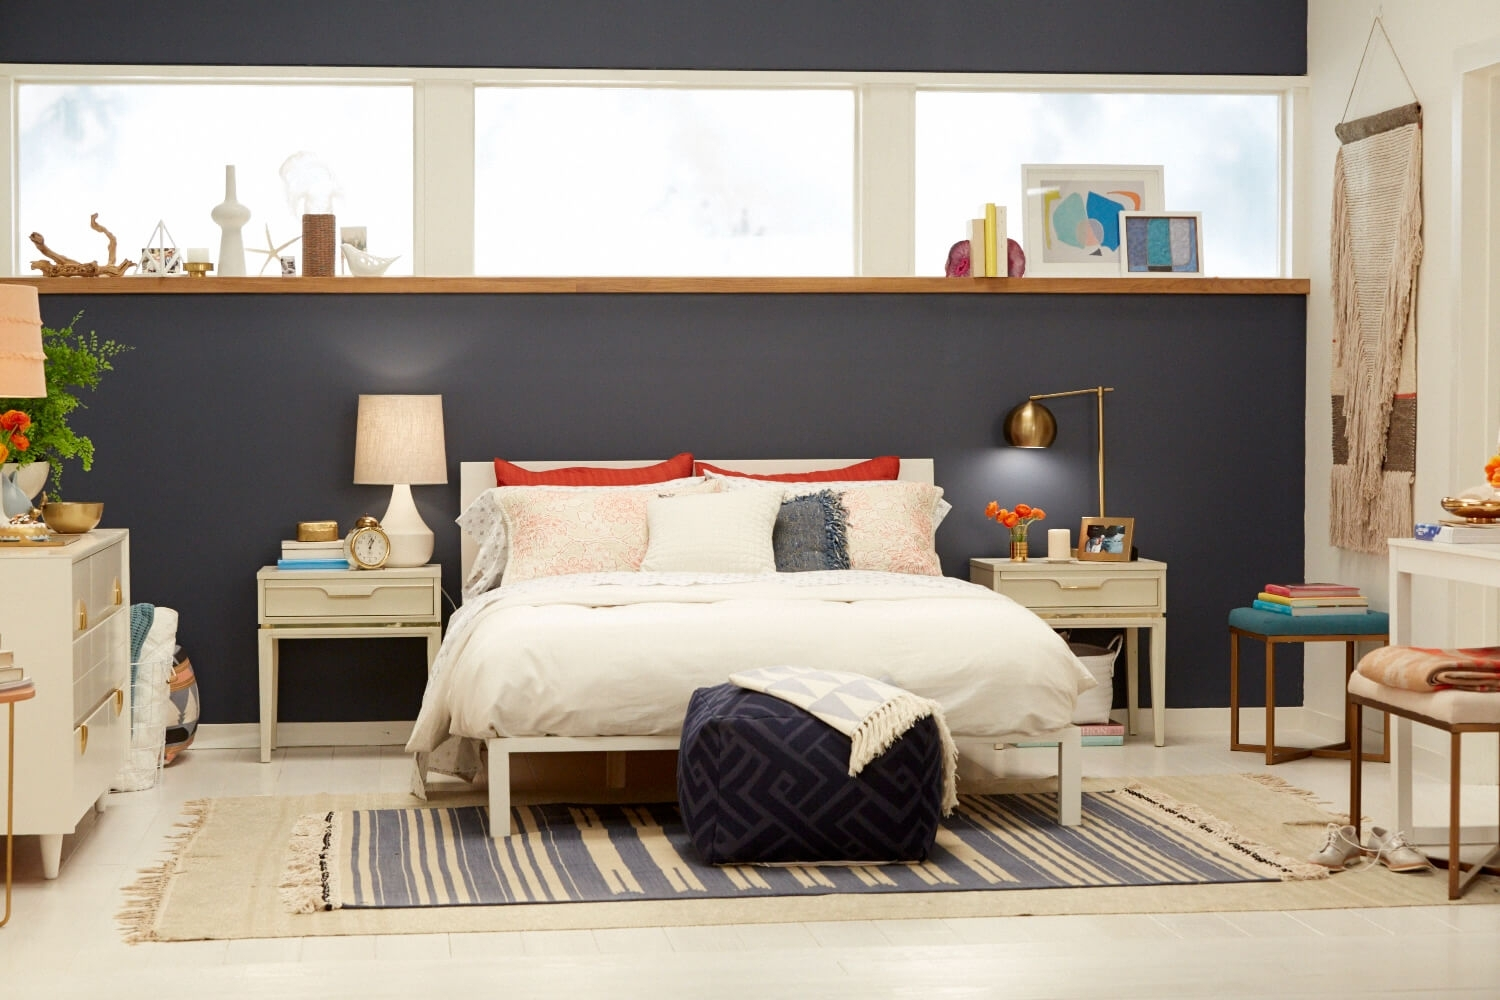 Target Chapter 7; Navy Blue Accent Wall Bedroom Makeover – Emily With Regard To 2018 Wall Accents For Small Bedroom (View 15 of 15)